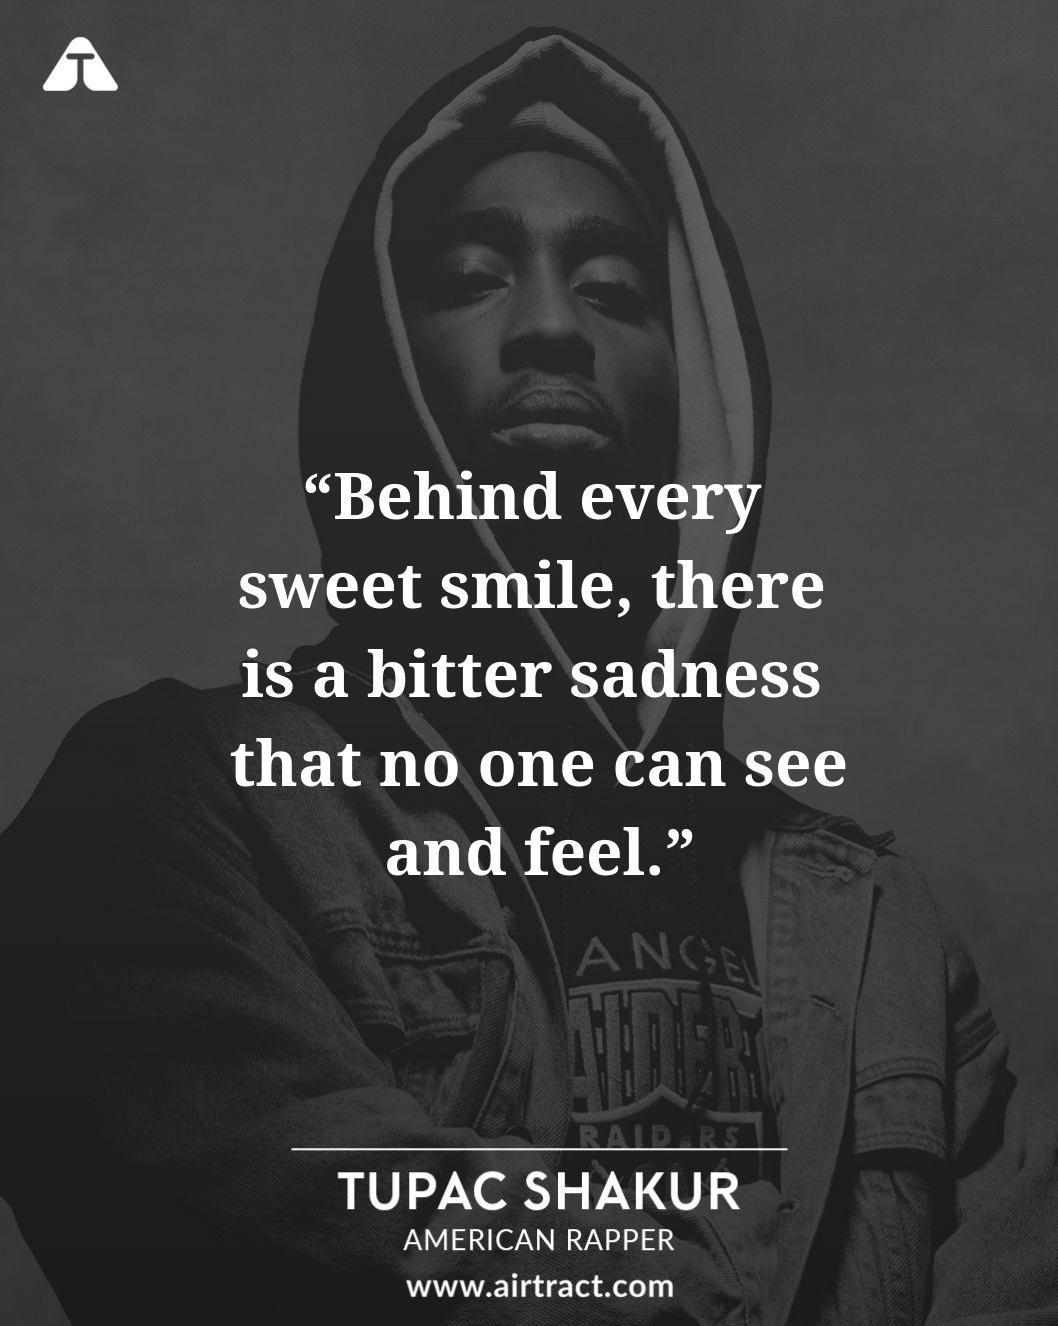 2pac Quotes About Friends : quotes, about, friends, Tupac, Shakur, Quotes, About, Life,, Love,, Friends, AirTract